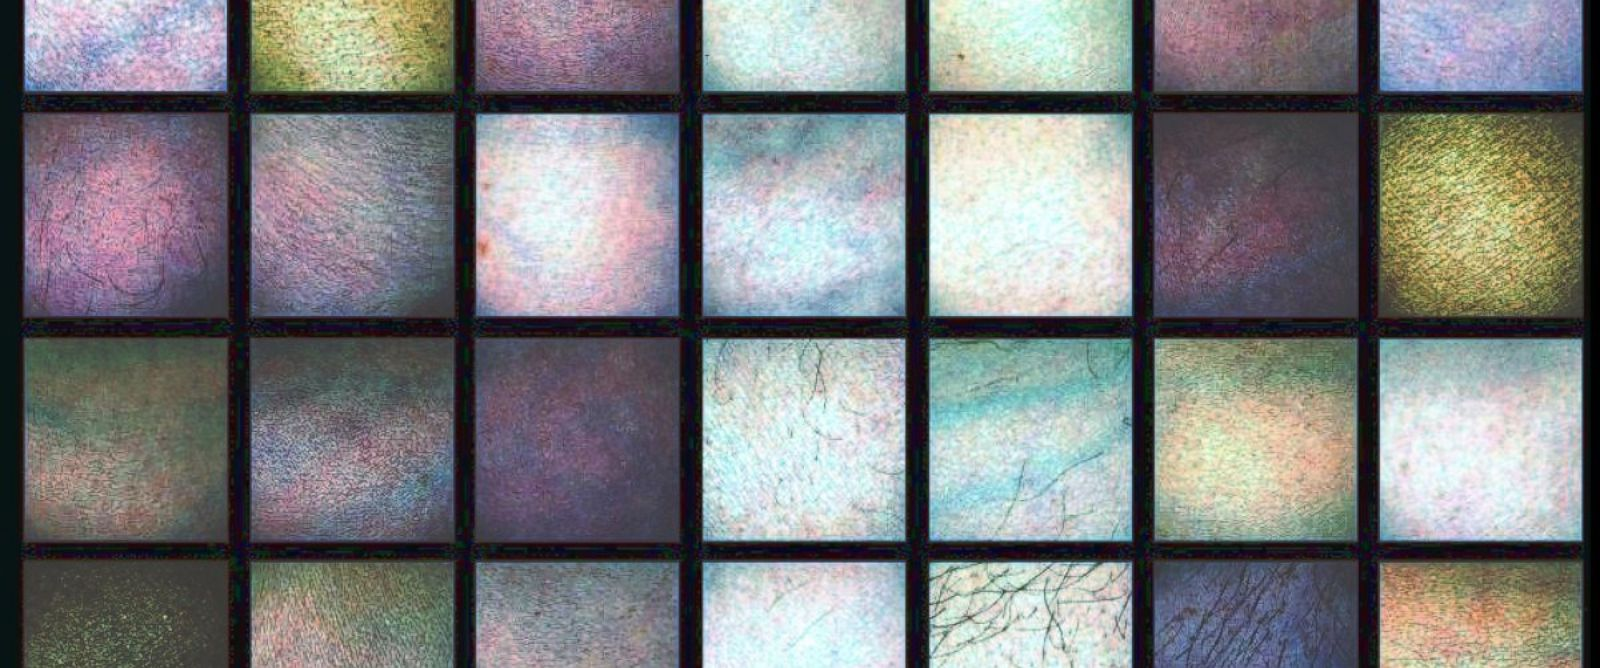 PHOTO: Researchers are examining the appearance of skin under light invisible to the human eye.